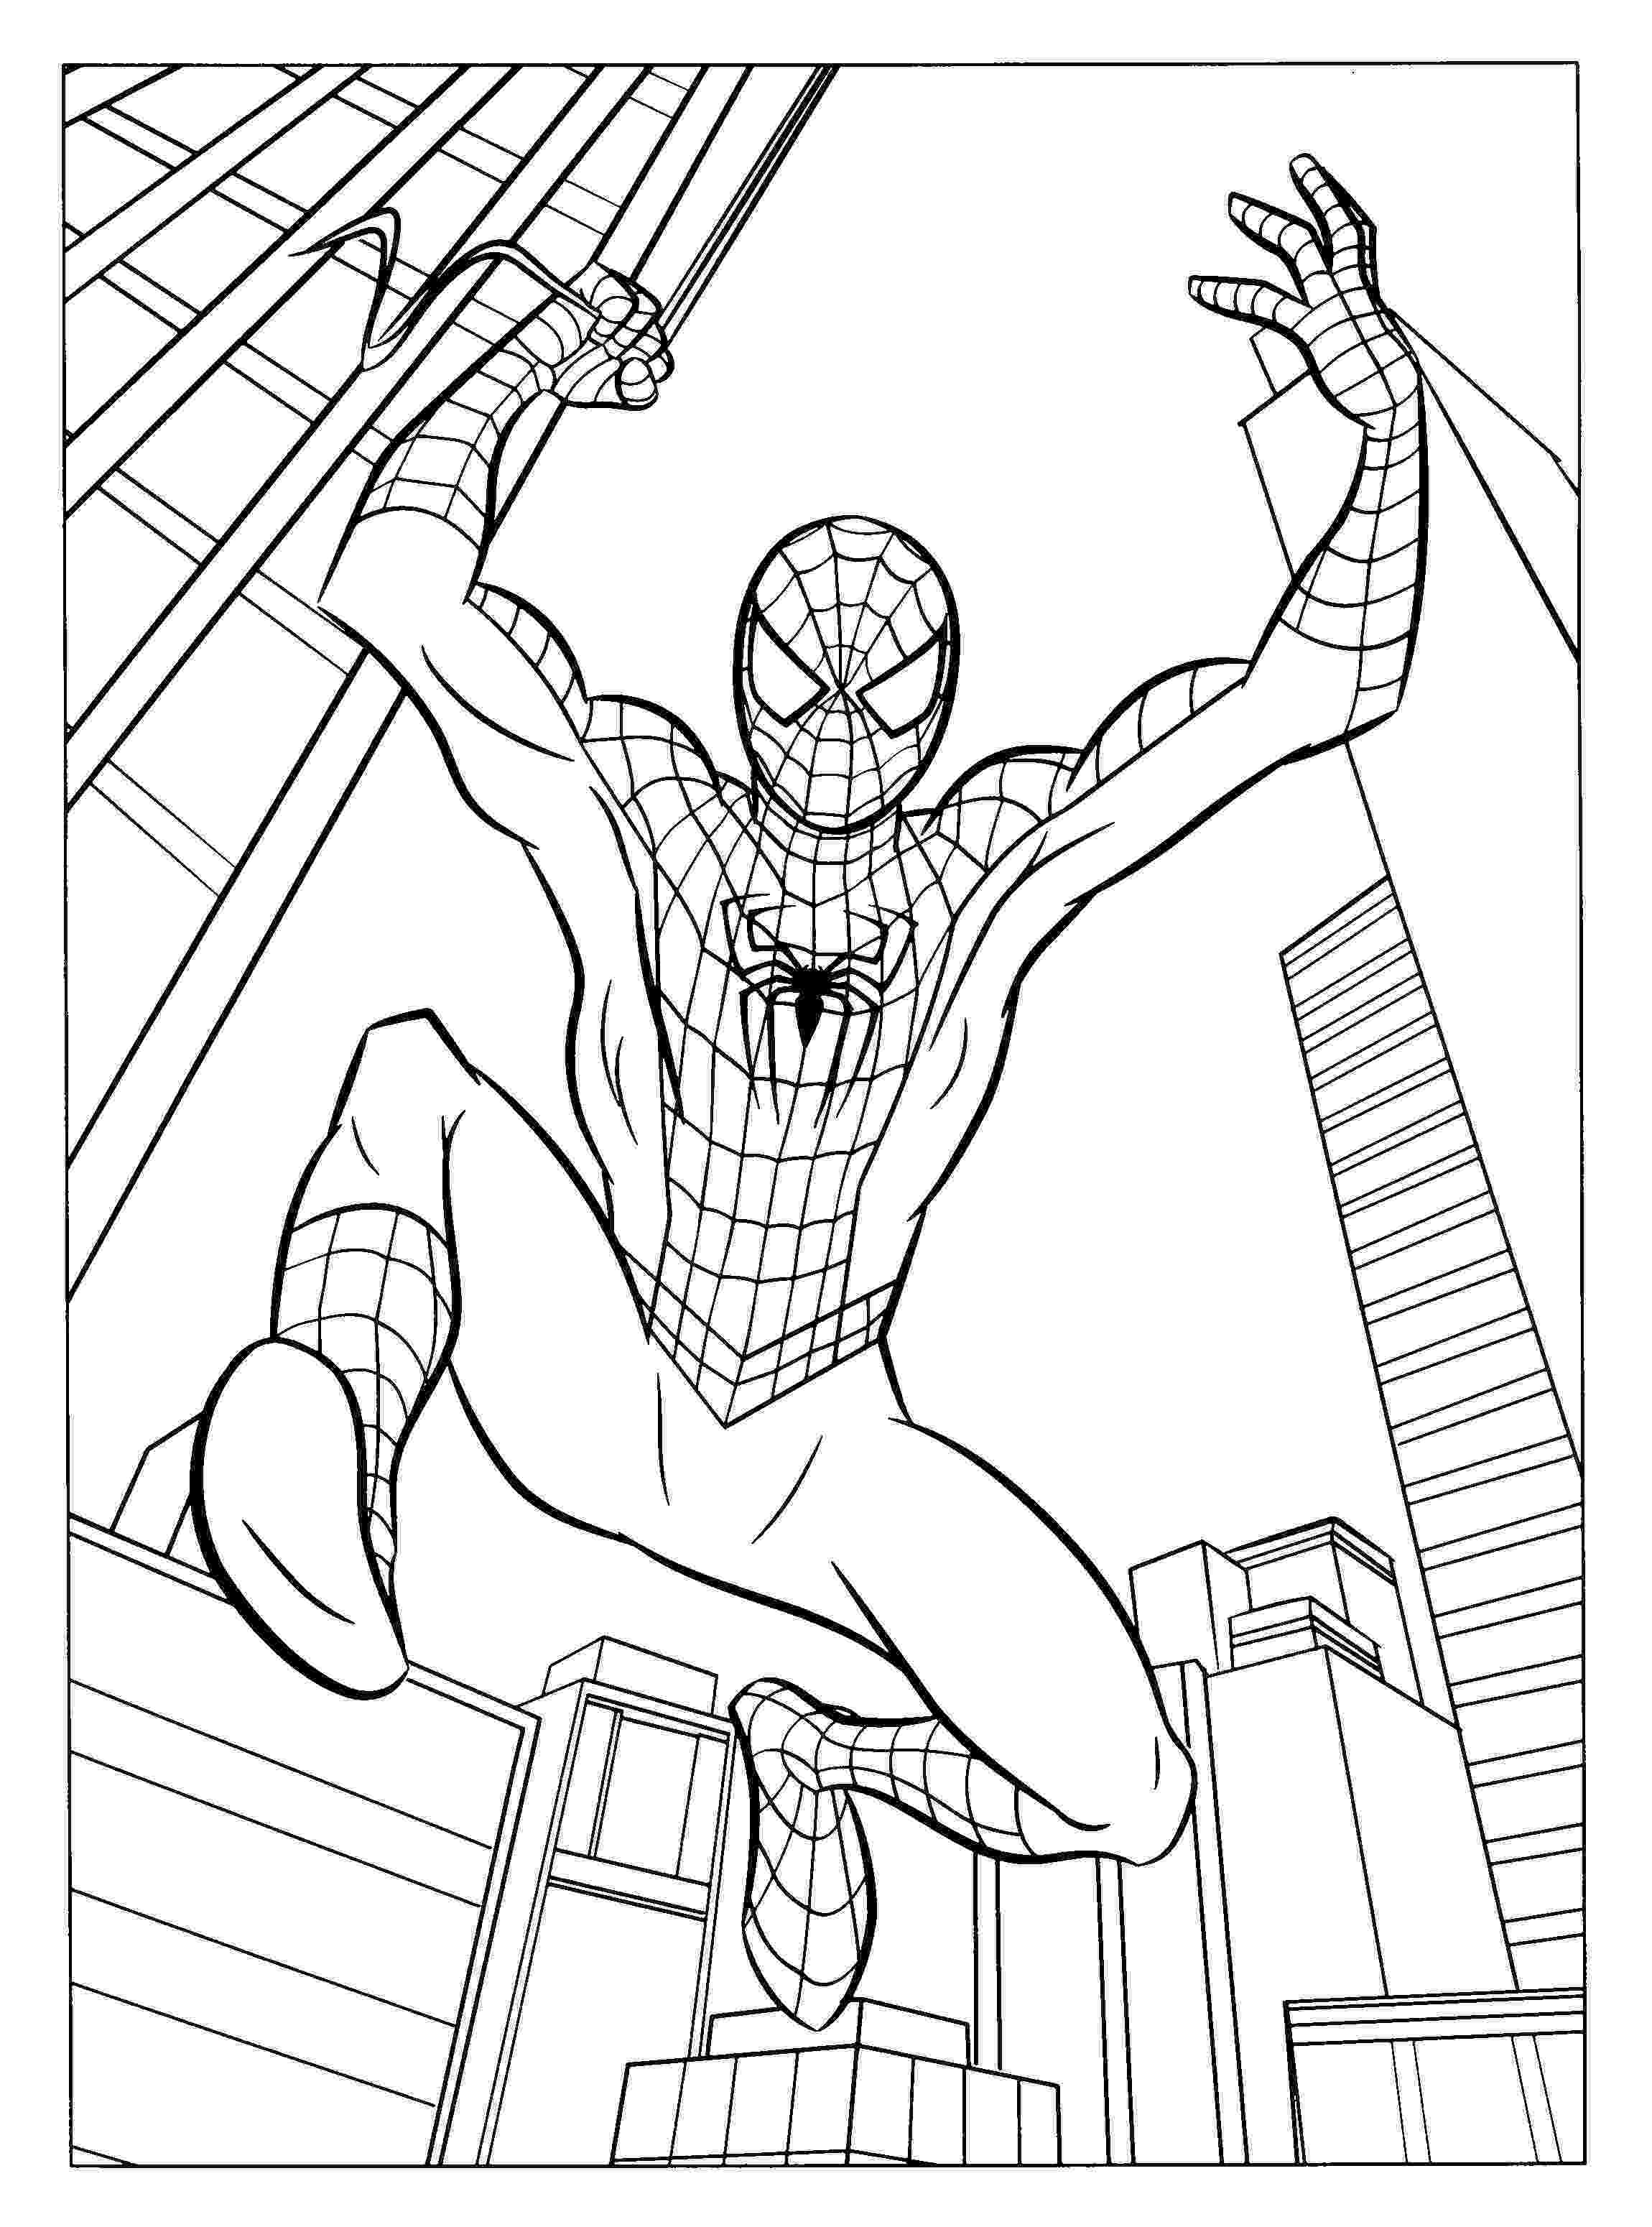 spiderman to color high quality spiderman colouring pages 28 to print for free color to spiderman